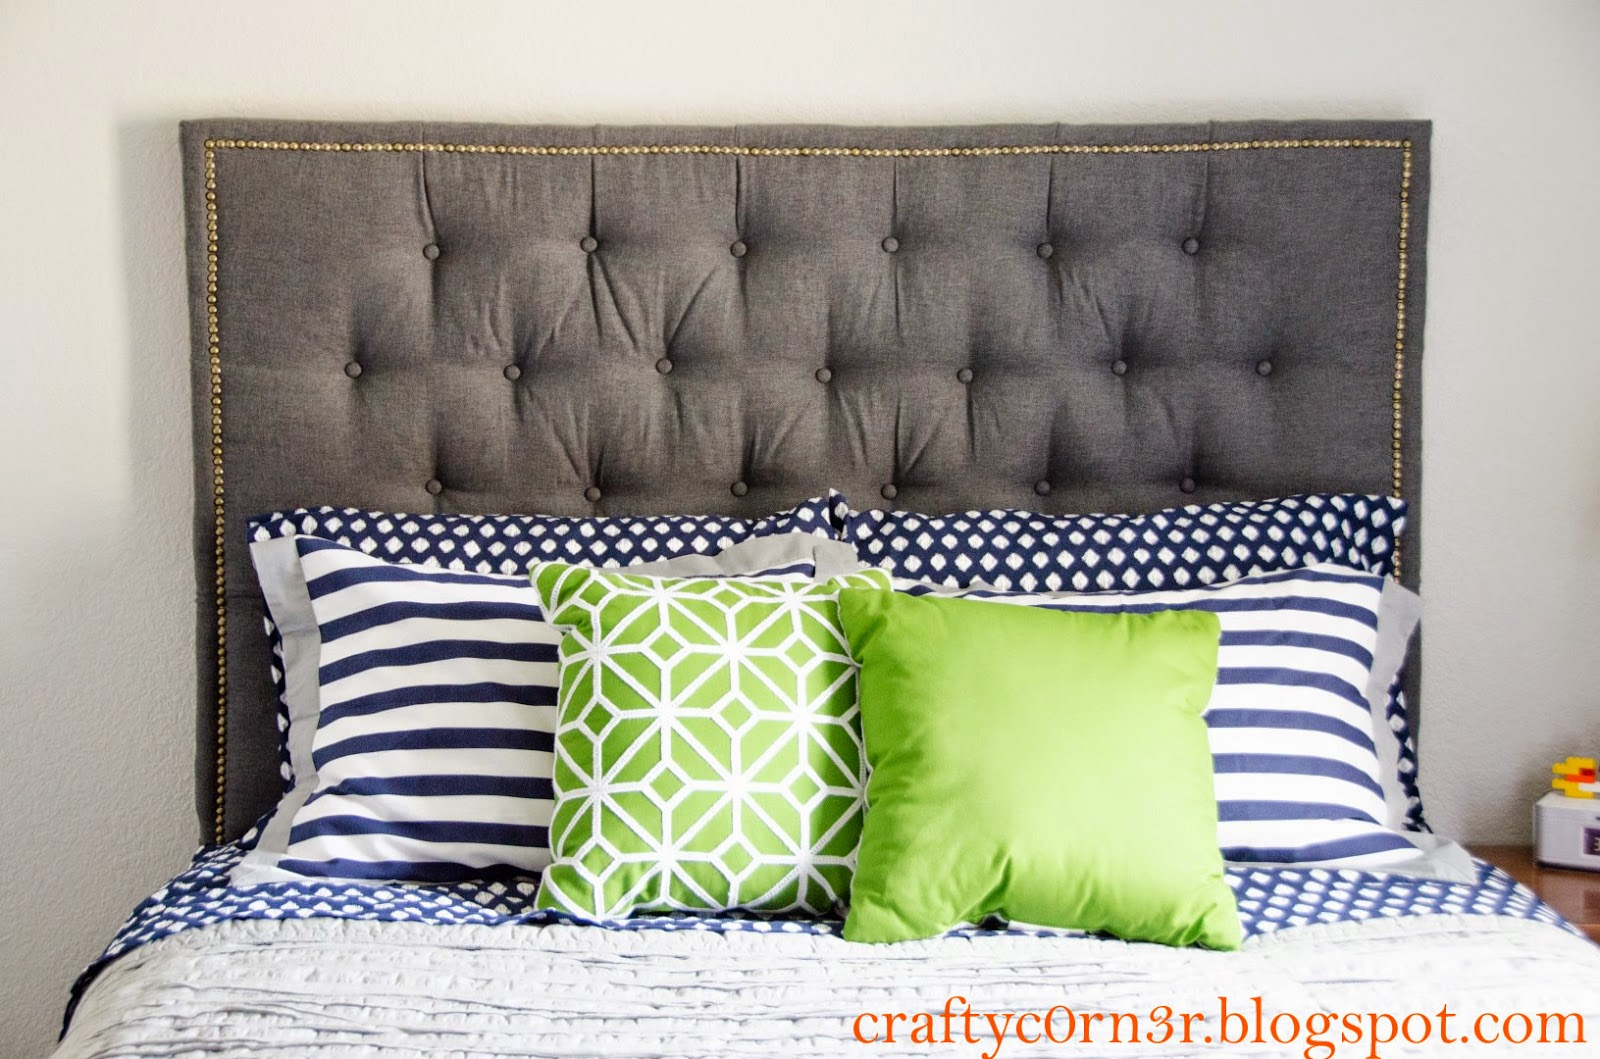 http://craftyc0rn3r.blogspot.com/2014/06/nailhead-trimmed-and-tufted-headboard.html